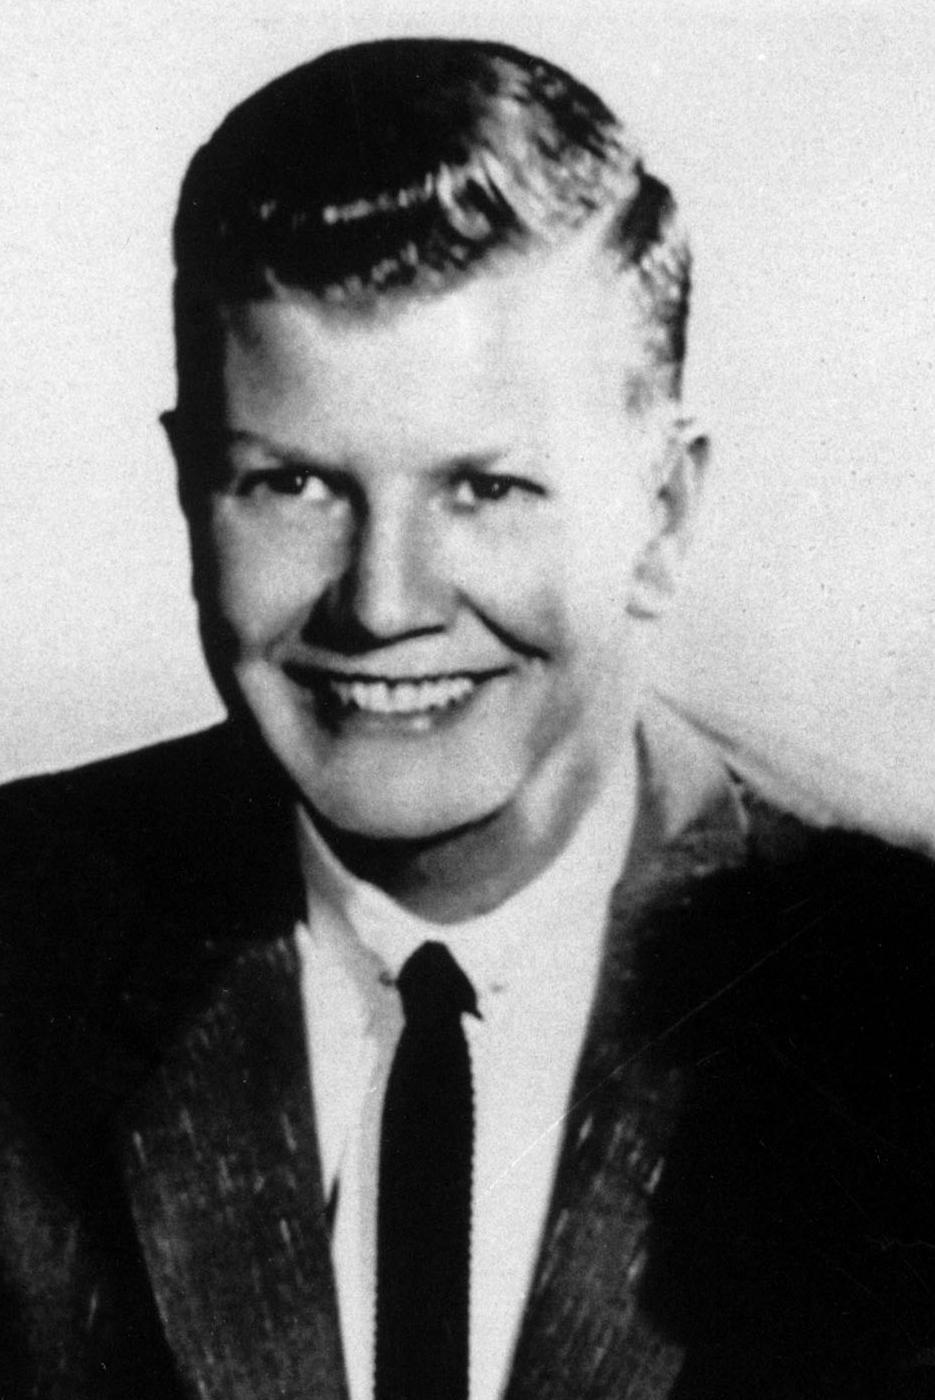 The American jazz musician Billy Tipton became famous after his 1989 death when it was discovered that he had been assigned the female sex at birth.